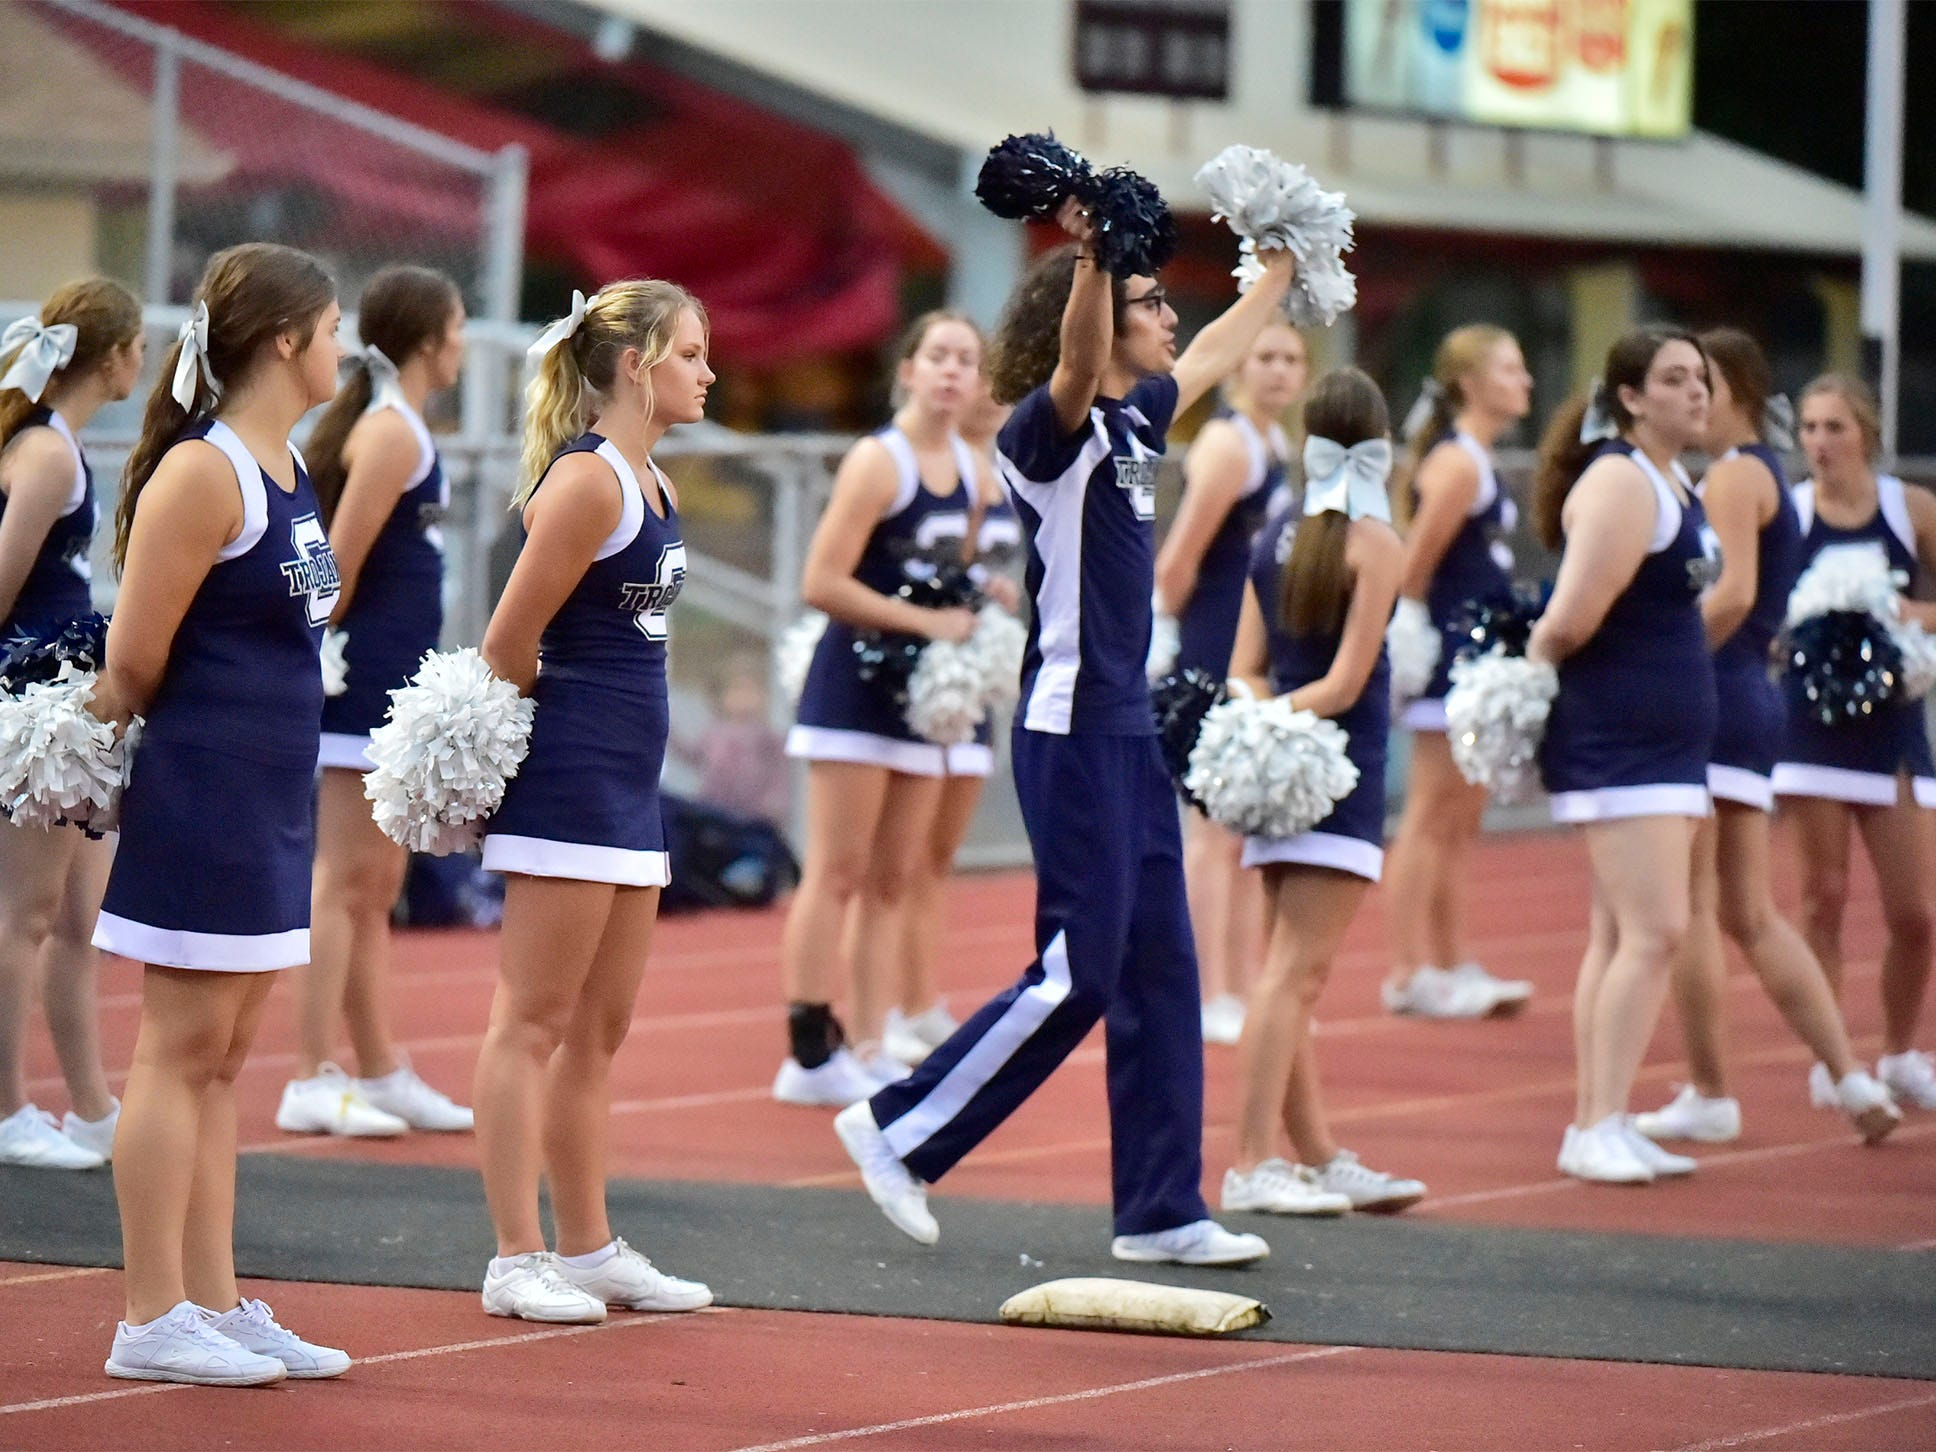 Trojan cheerleaders do a set. Chambersburg defeated Altoona 48-28 in PIAA football to move to 4-0 on Friday, Sept. 14, 2018.